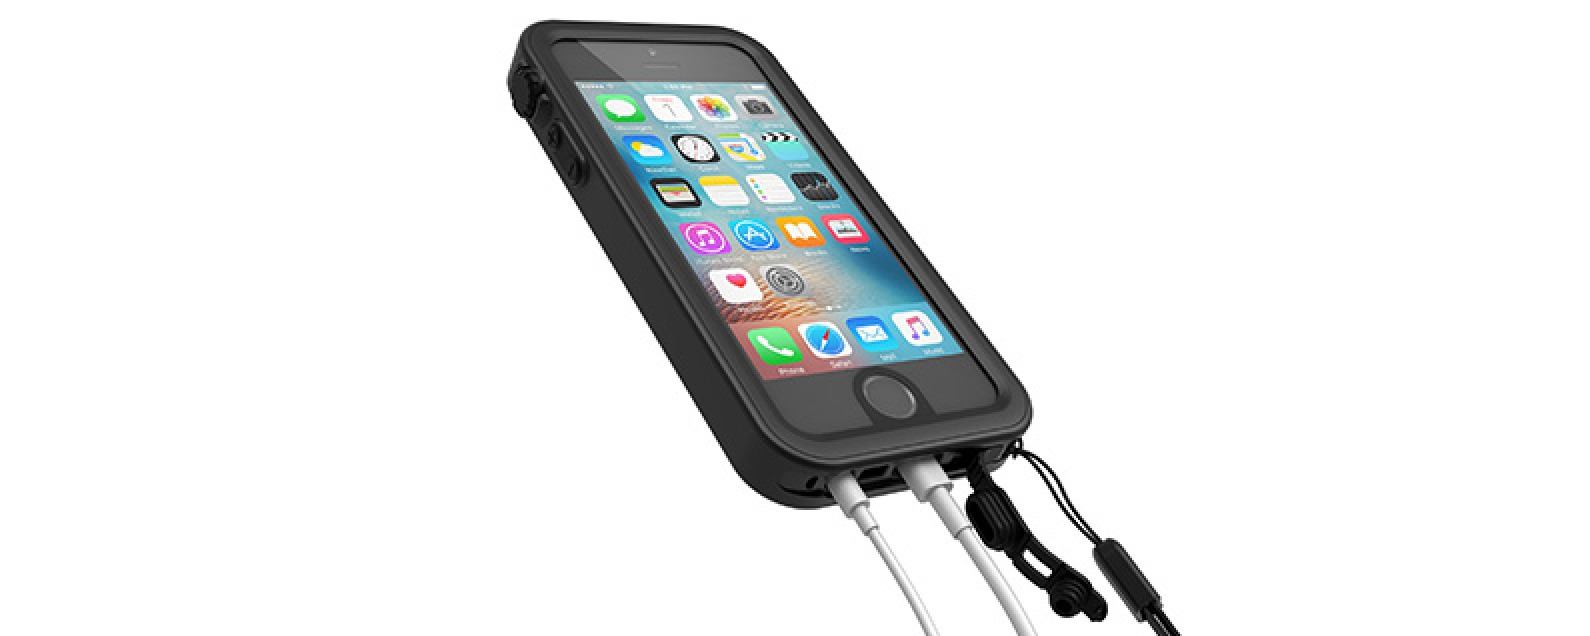 hot sales 2312d 937c5 Review: Catalyst Waterproof iPhone SE Case | iPhoneLife.com